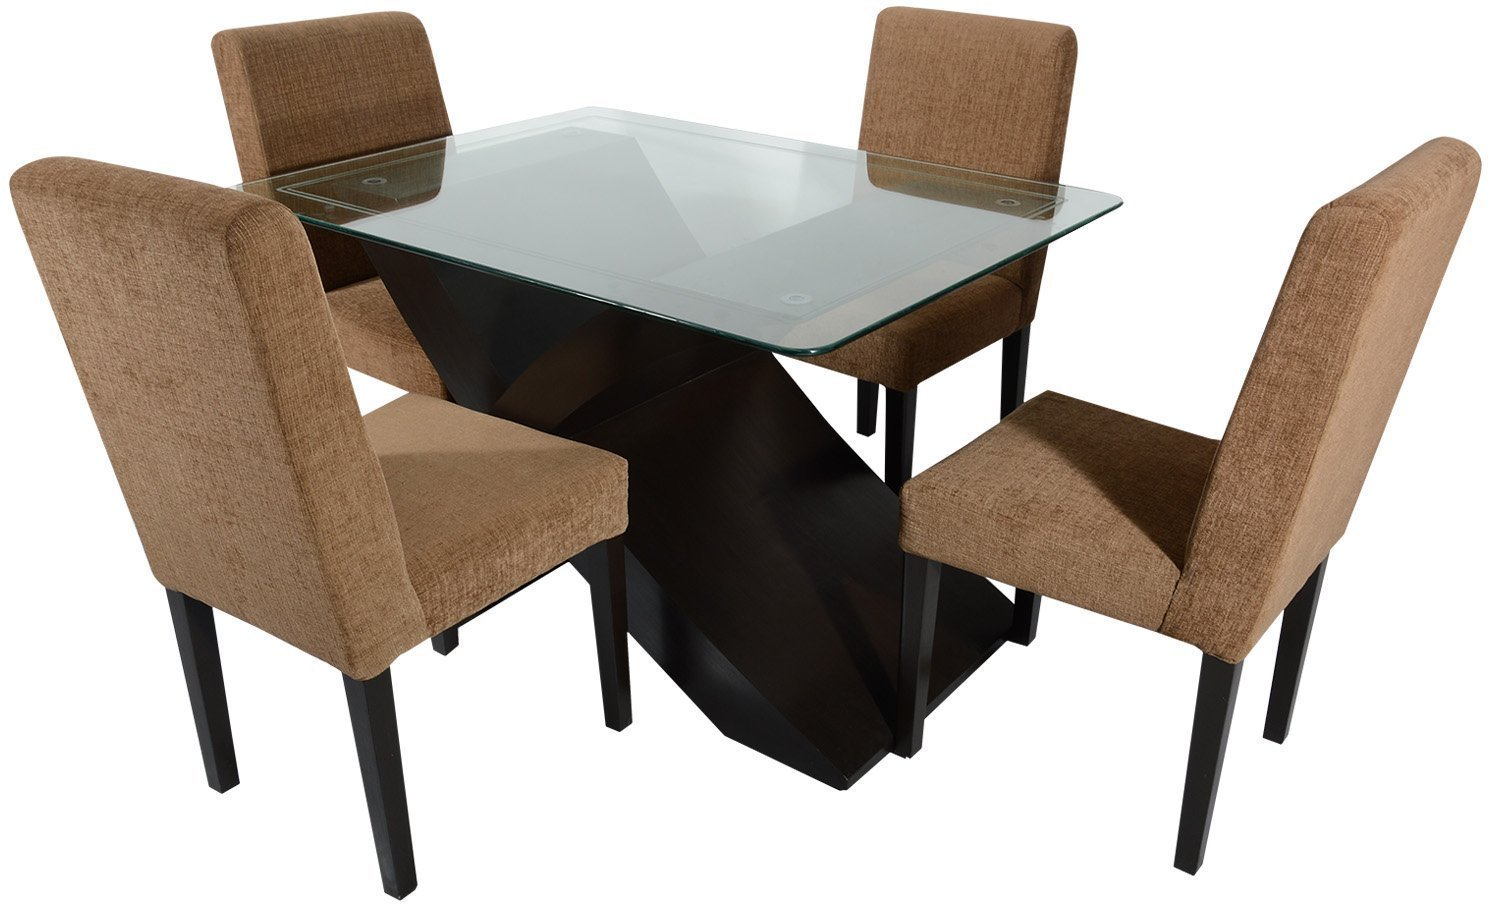 2 seater table and chairs b m lounge chair with canopy canada rawat i4d 14cx4 four dining muticolour